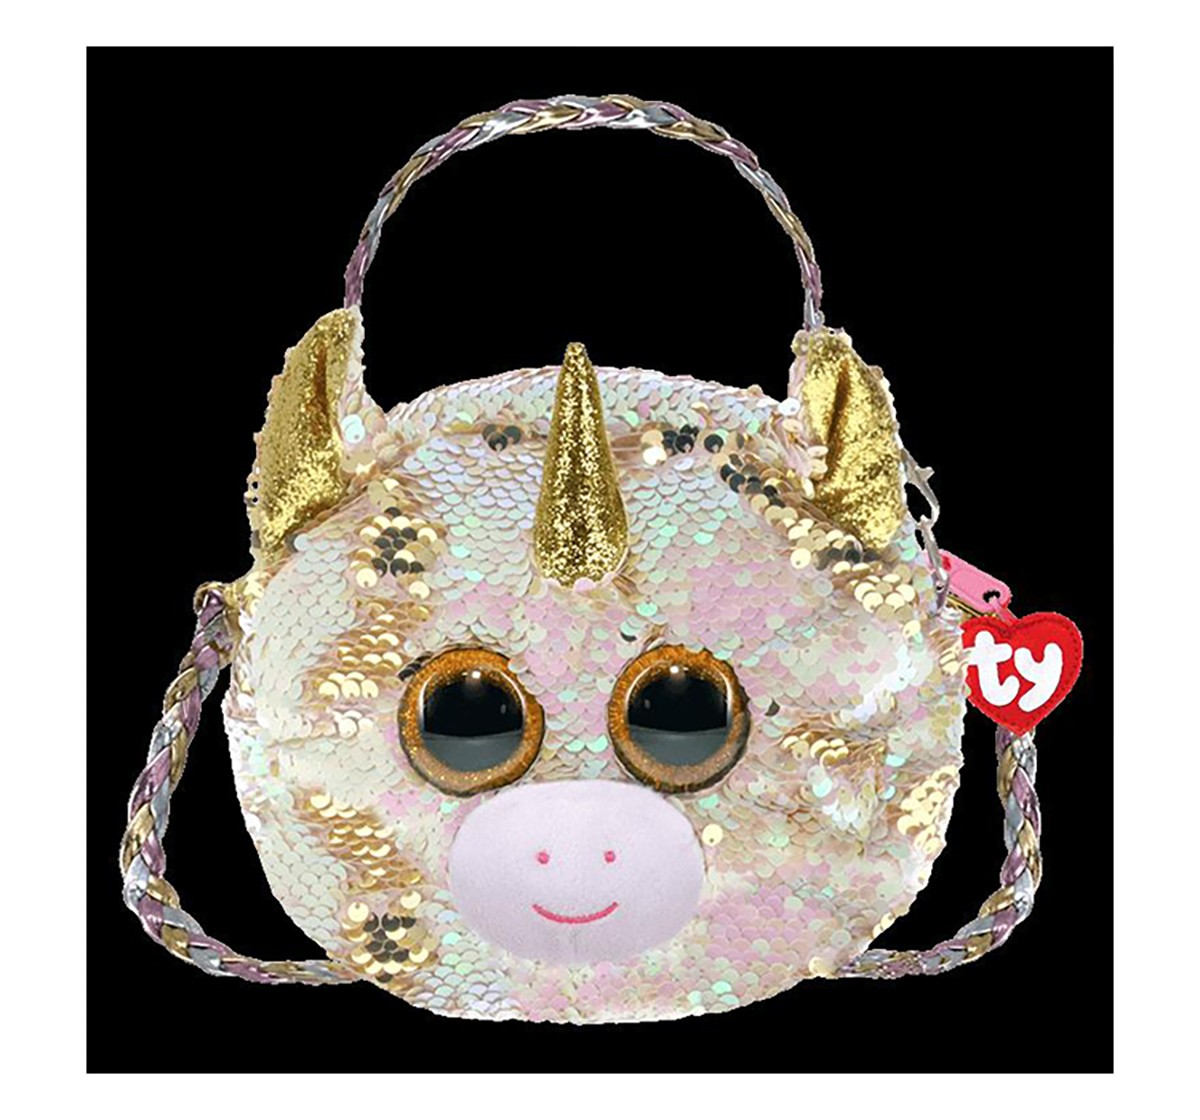 Ty Fantasia - Flippable Sequin Shoulder Bag/ Purse Plush Accessories for Girls age 3Y+ - 15 Cm